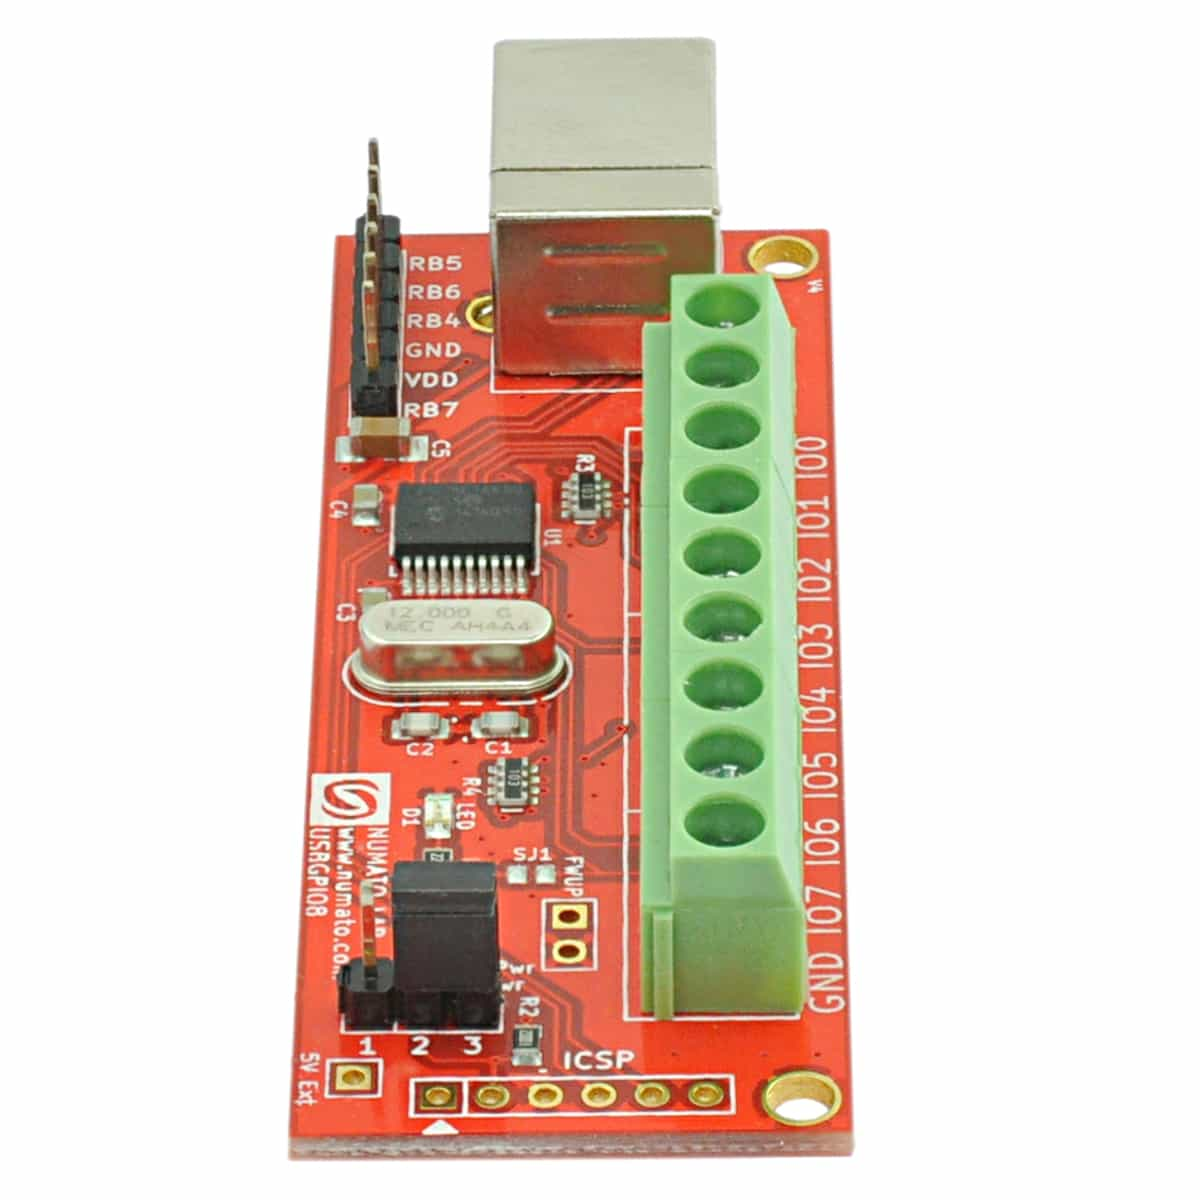 8 Channel Usb Gpio Module With Analog Inputs Numato Lab Circuit Of Pcbased Data Logger Is Designed Around To Digital